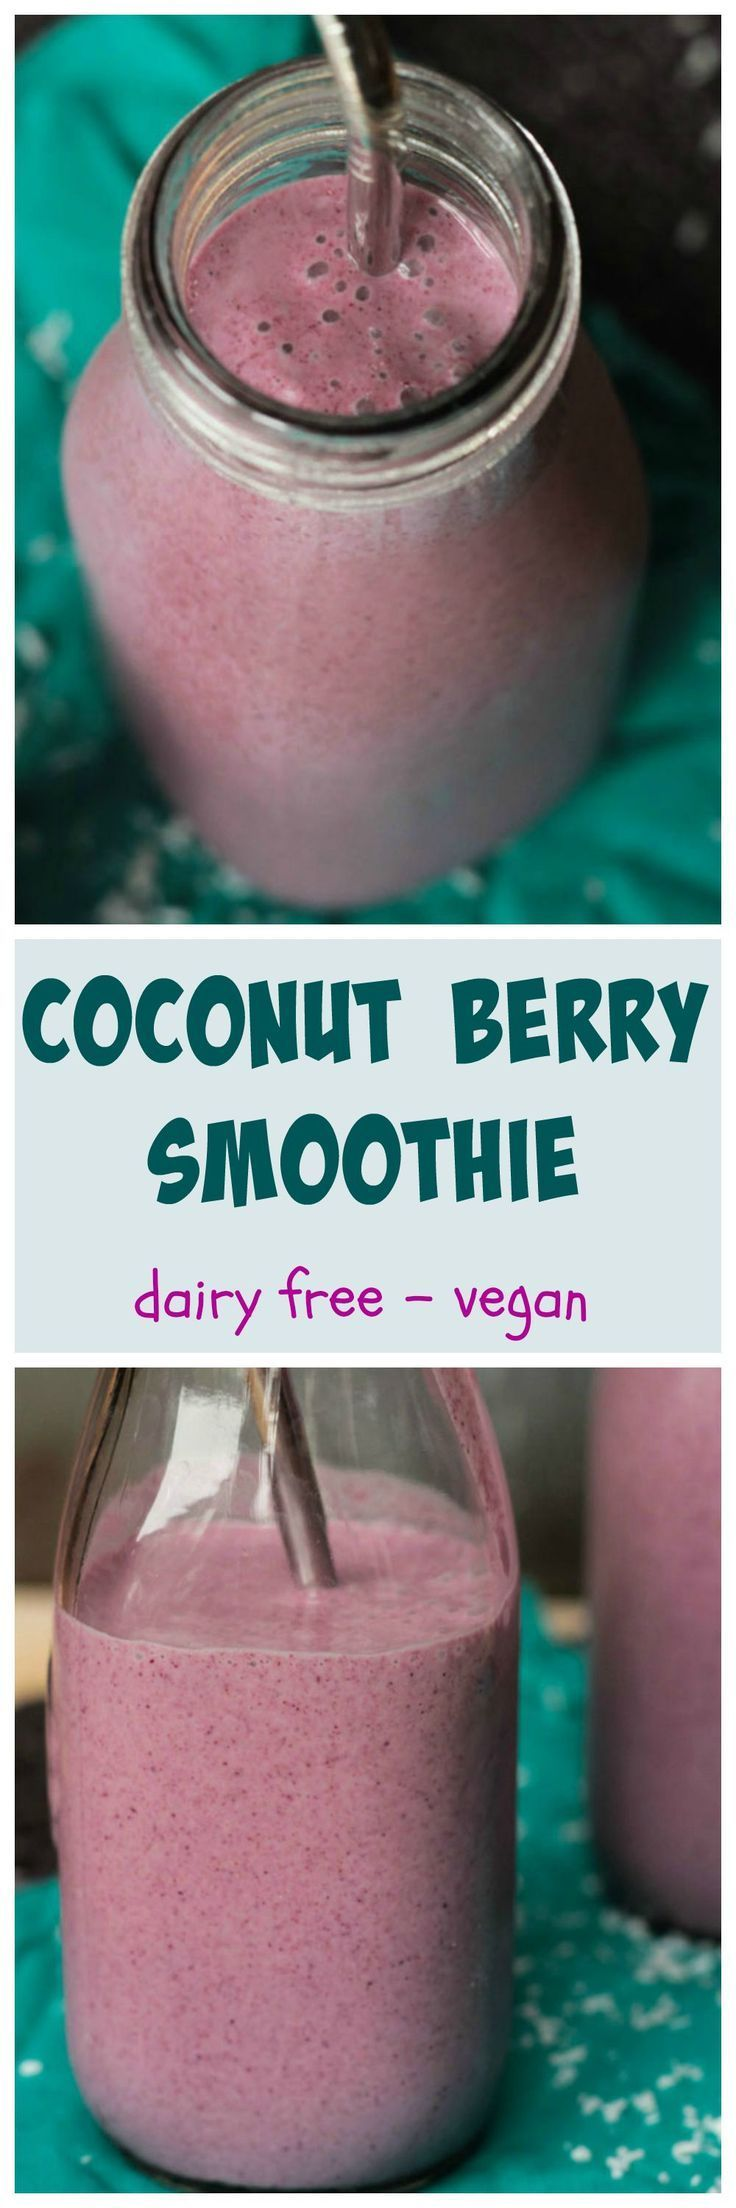 Coconut Berry Smoothie - a creamy delicious nutritious pretty in pink smoothie using coconut water instead of non-dairy milk.